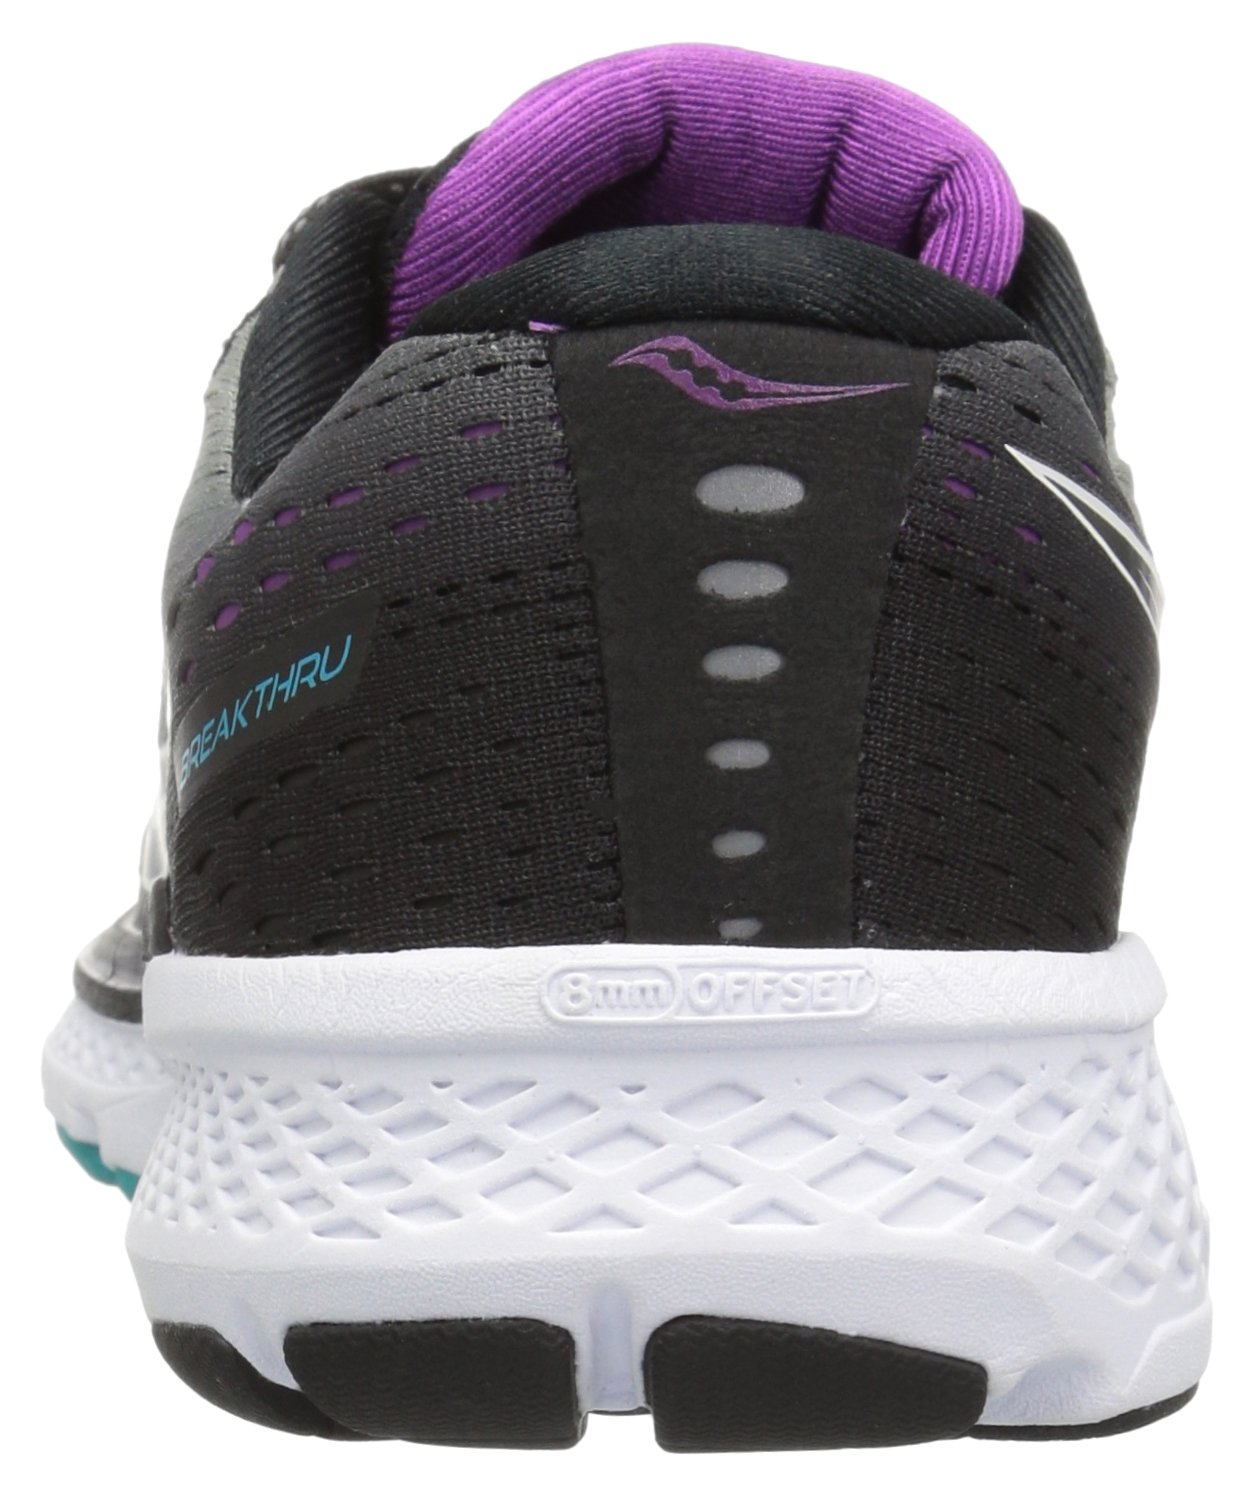 Saucony Women's Breakthru 3 Running-Shoes Economical, stylish, and eye-catching shoes